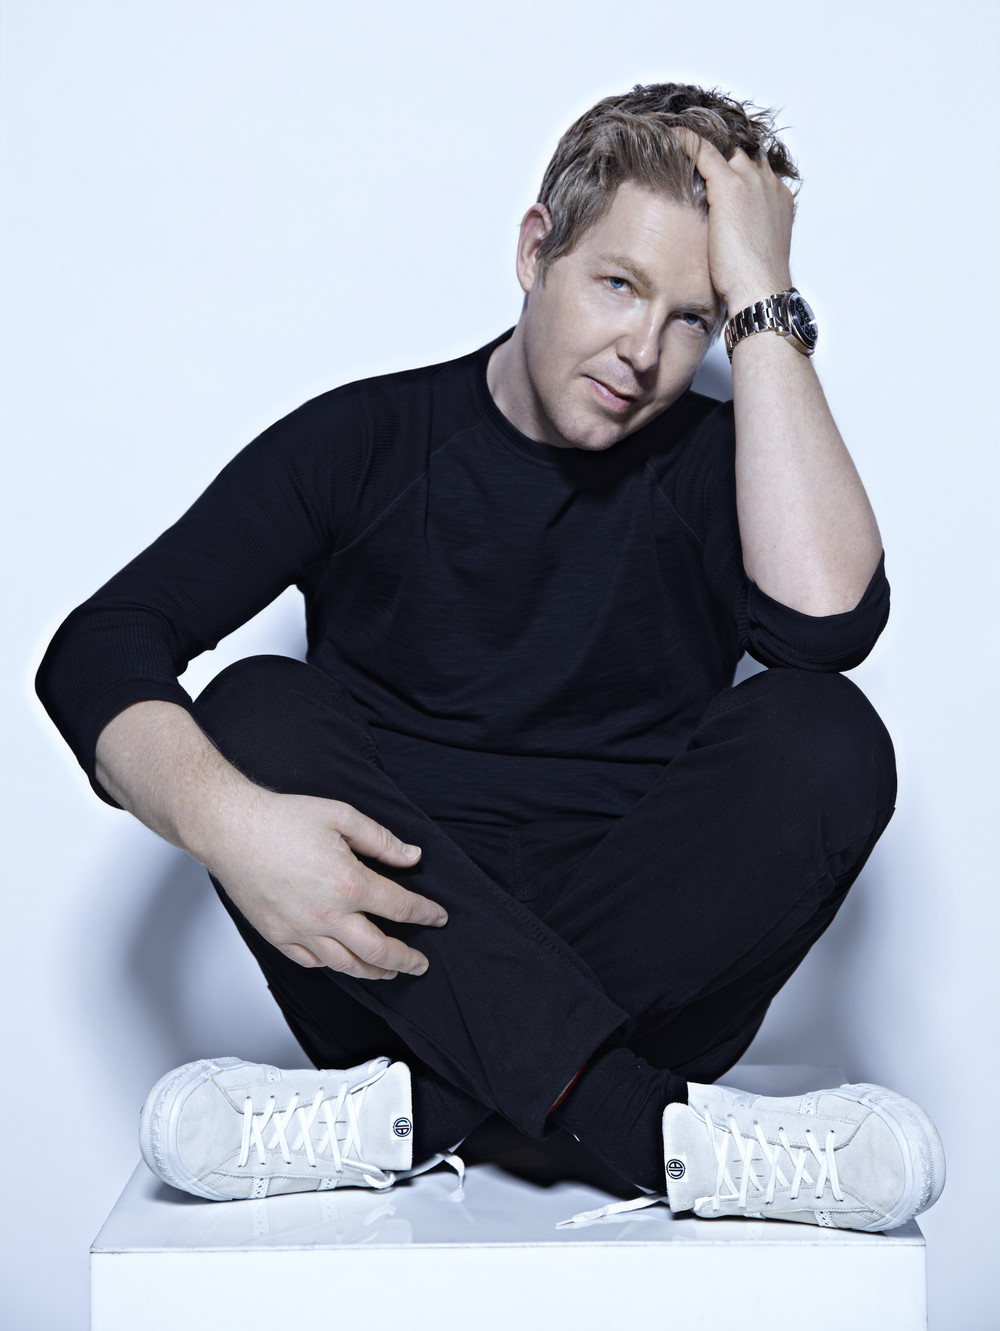 John Digweed news